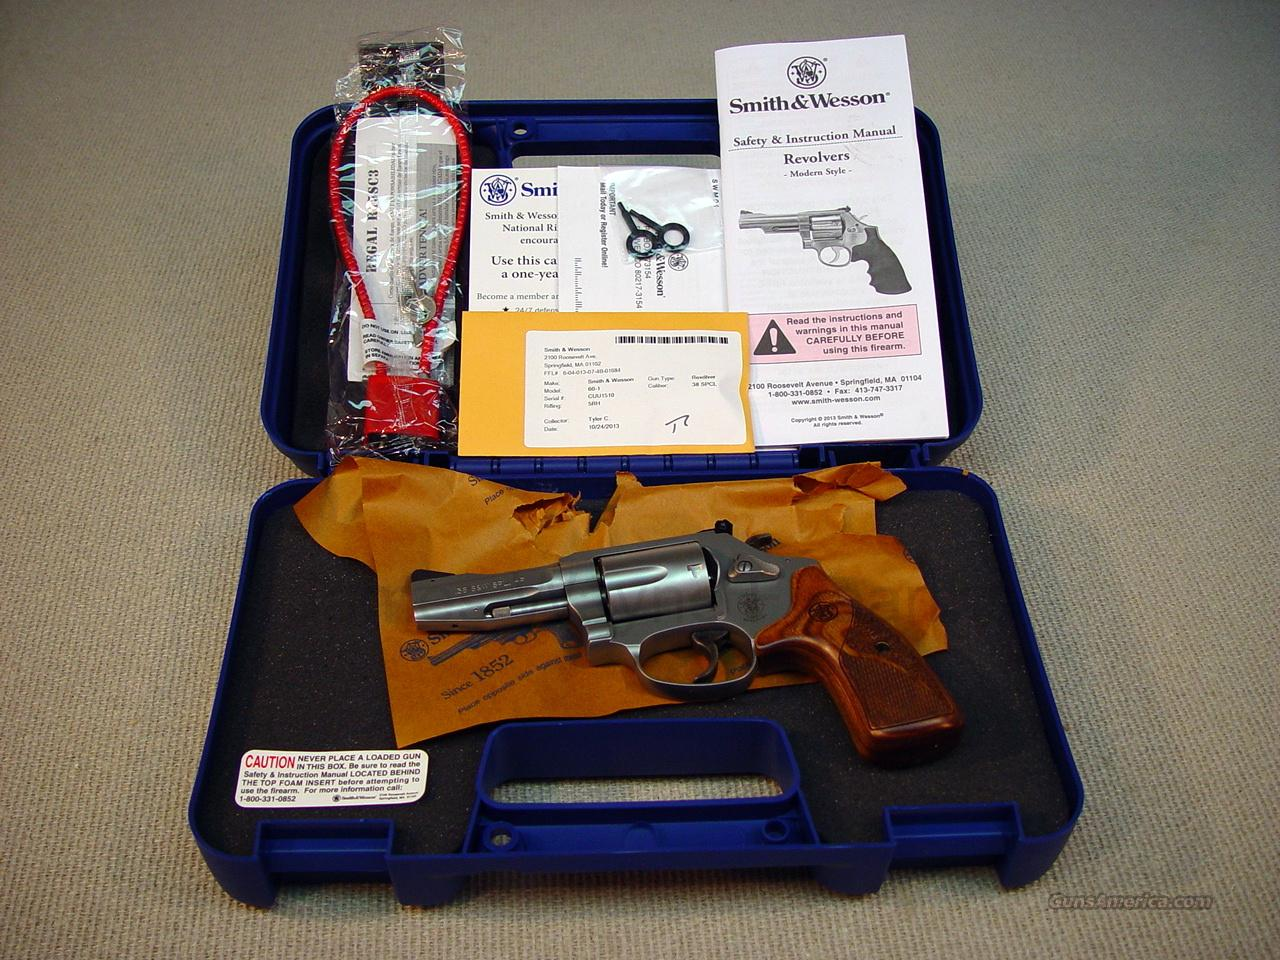 SMITH & WESSON MODEL 60-15 PRO SERIES 38 SPL +P  Guns > Pistols > Smith & Wesson Revolvers > Pocket Pistols